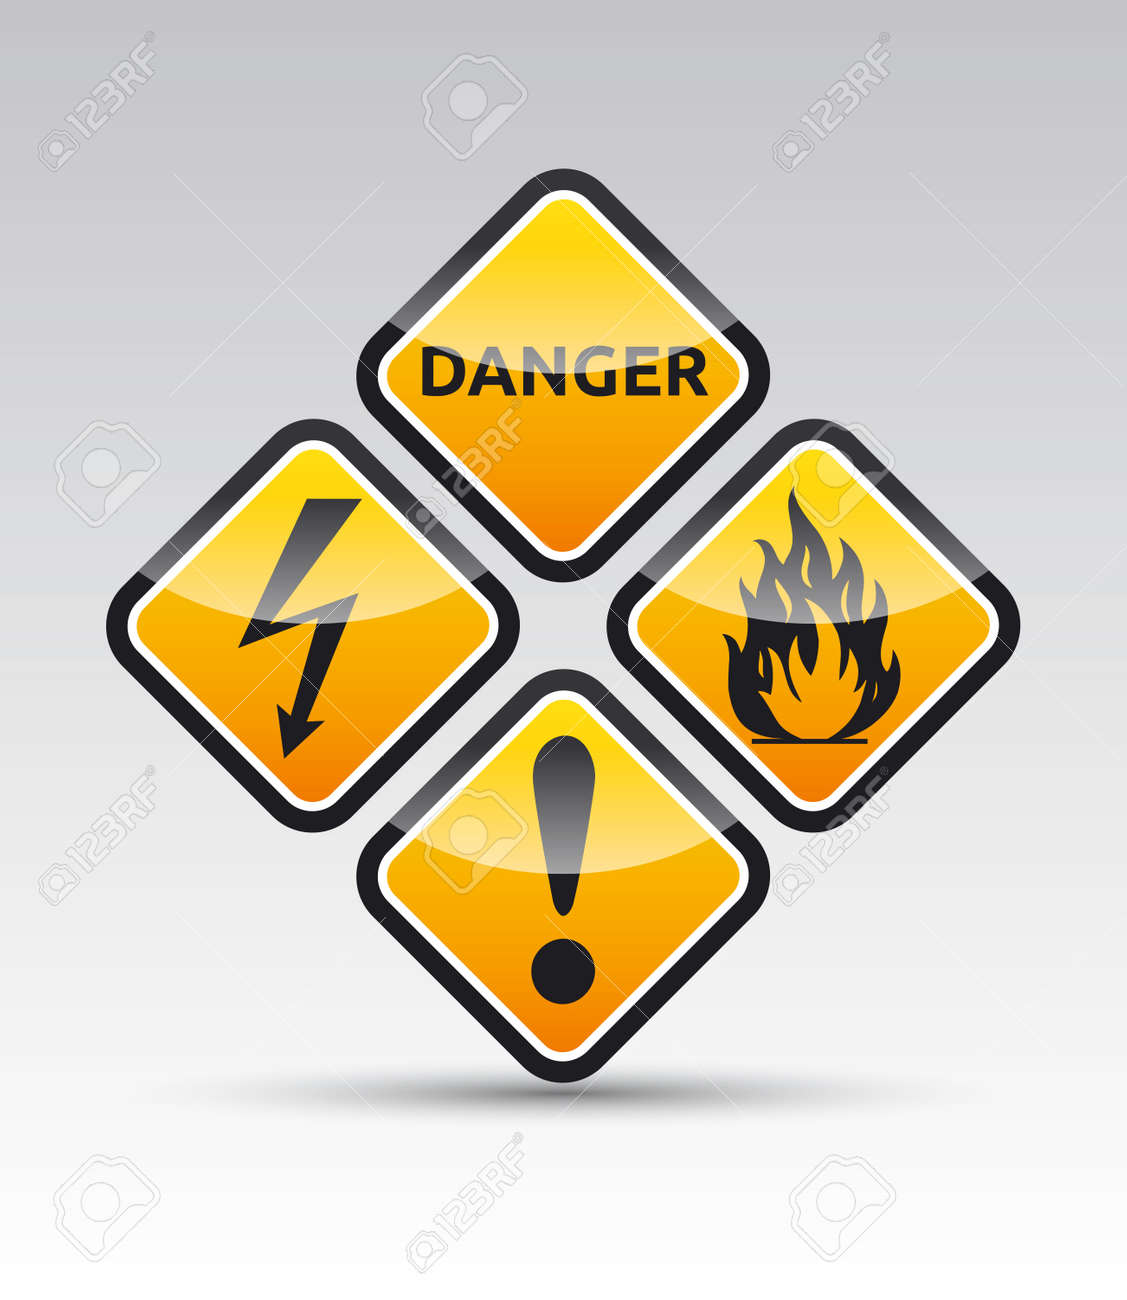 Isolated  orange Danger sign collection with black border, reflection and shadow on white background Stock Vector - 20170621